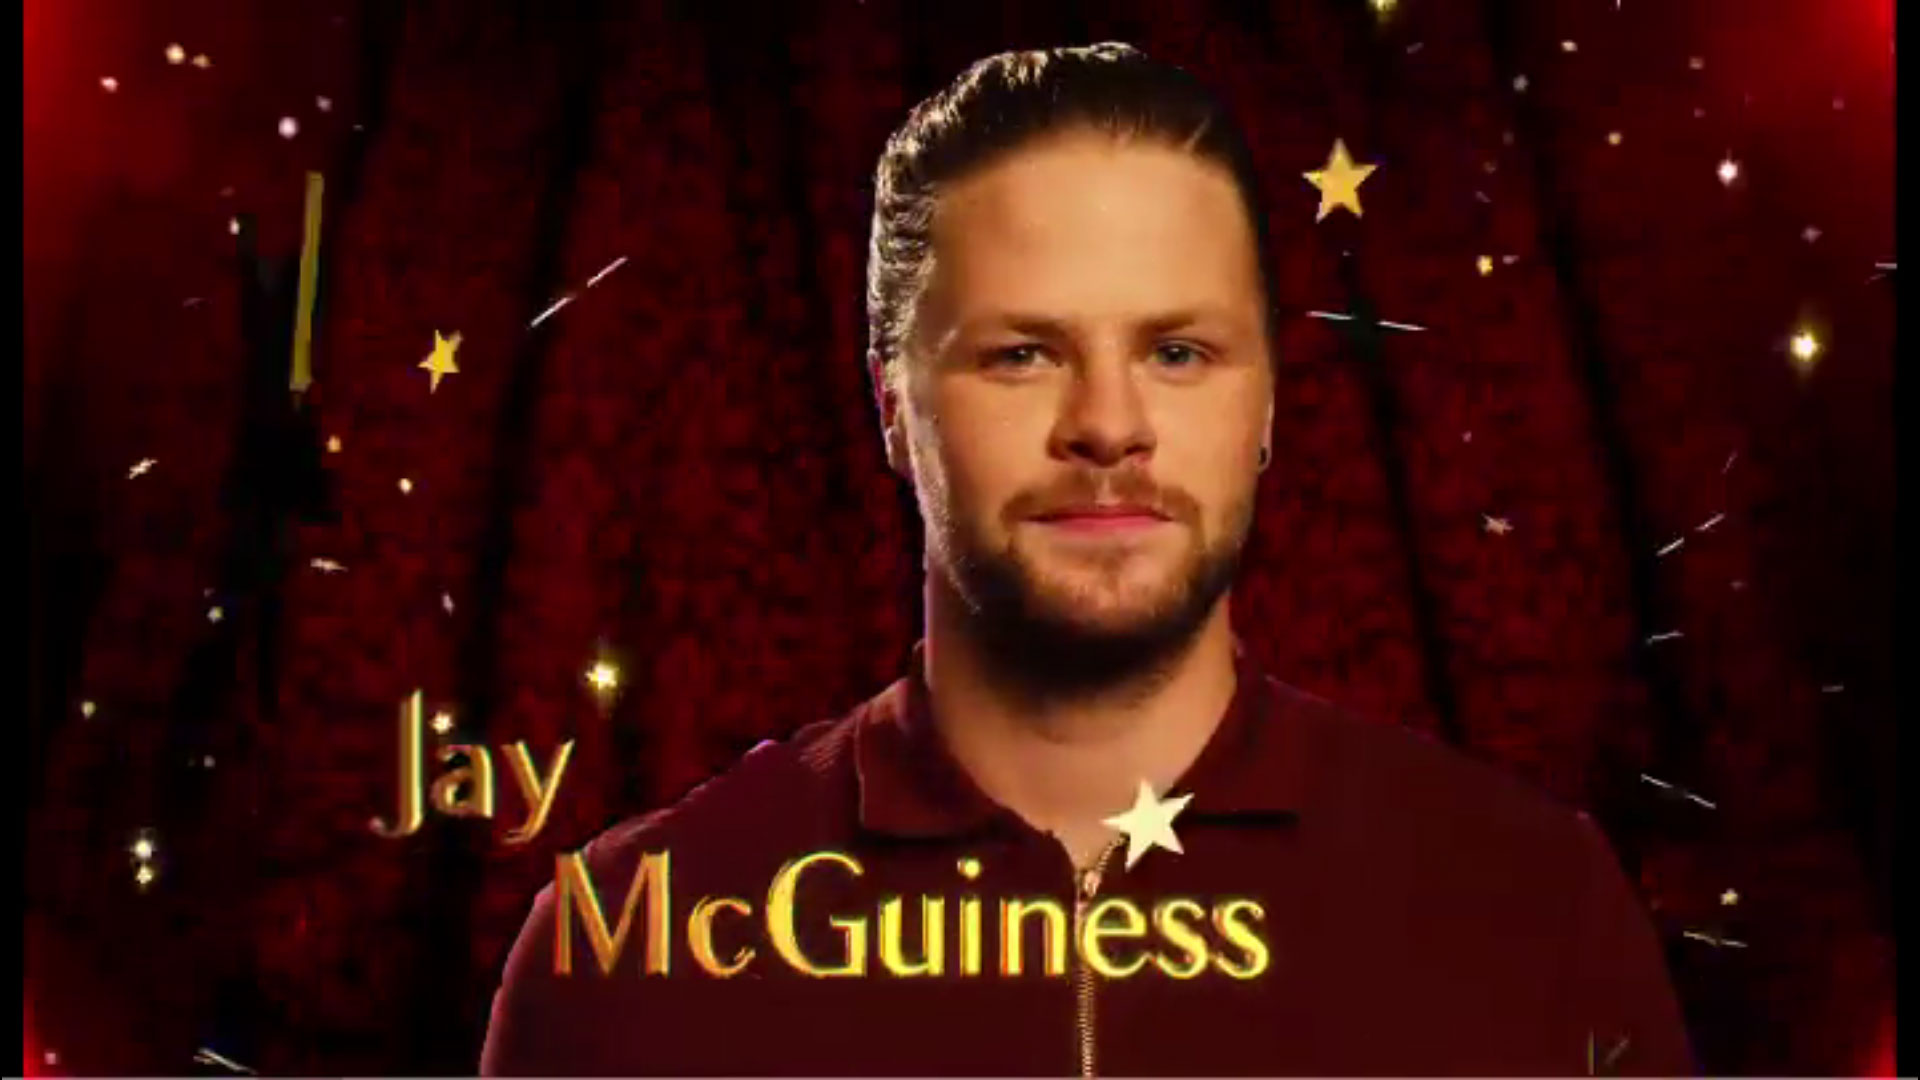 The Wanted's Jay McGuiness is the latest celebrity to join Strictly Come Dancing